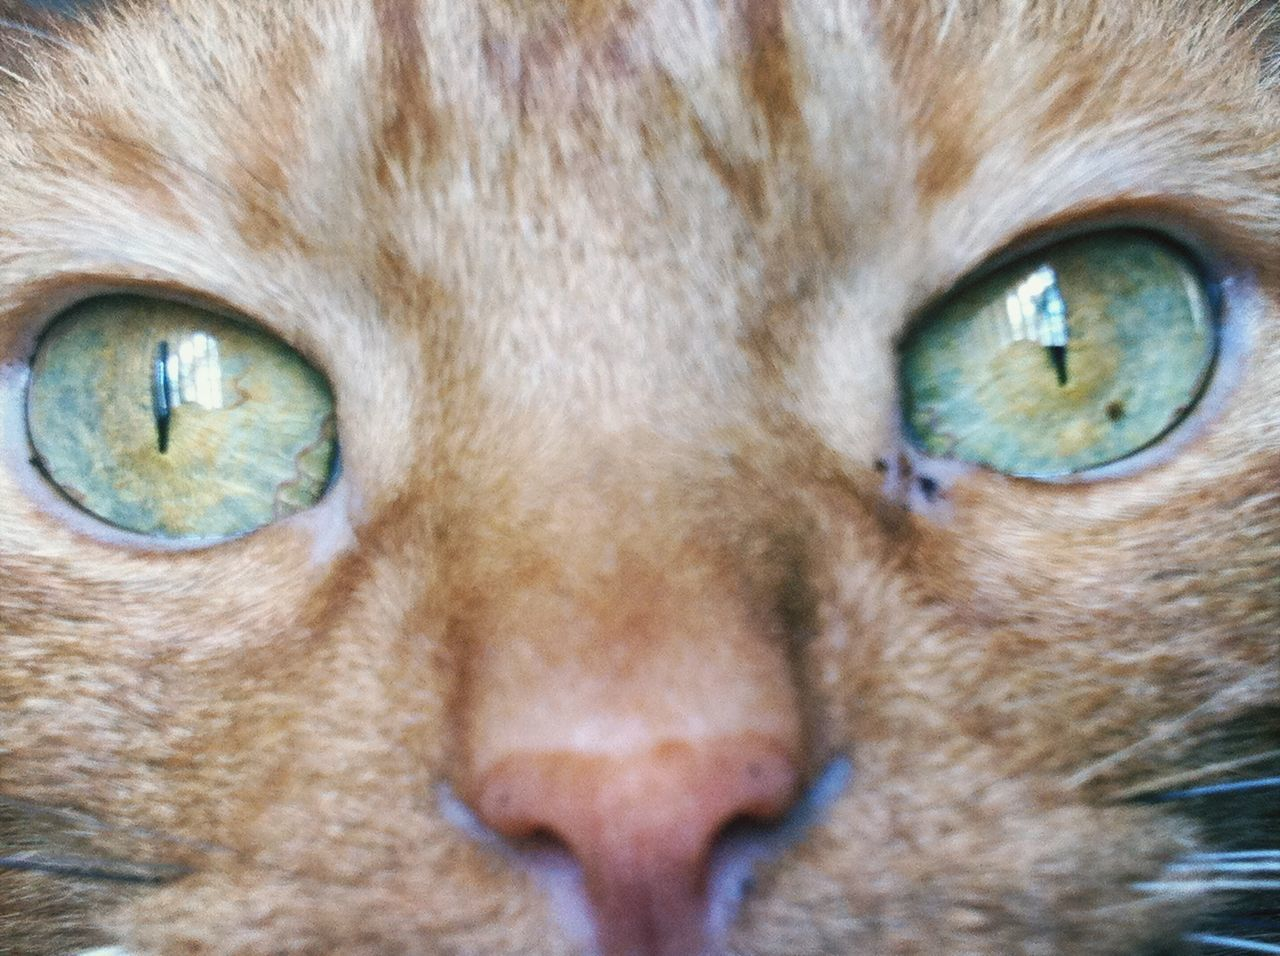 domestic cat, pets, one animal, feline, domestic animals, animal themes, mammal, portrait, looking at camera, cat, animal head, close-up, full frame, no people, whisker, yellow eyes, backgrounds, ginger cat, indoors, day